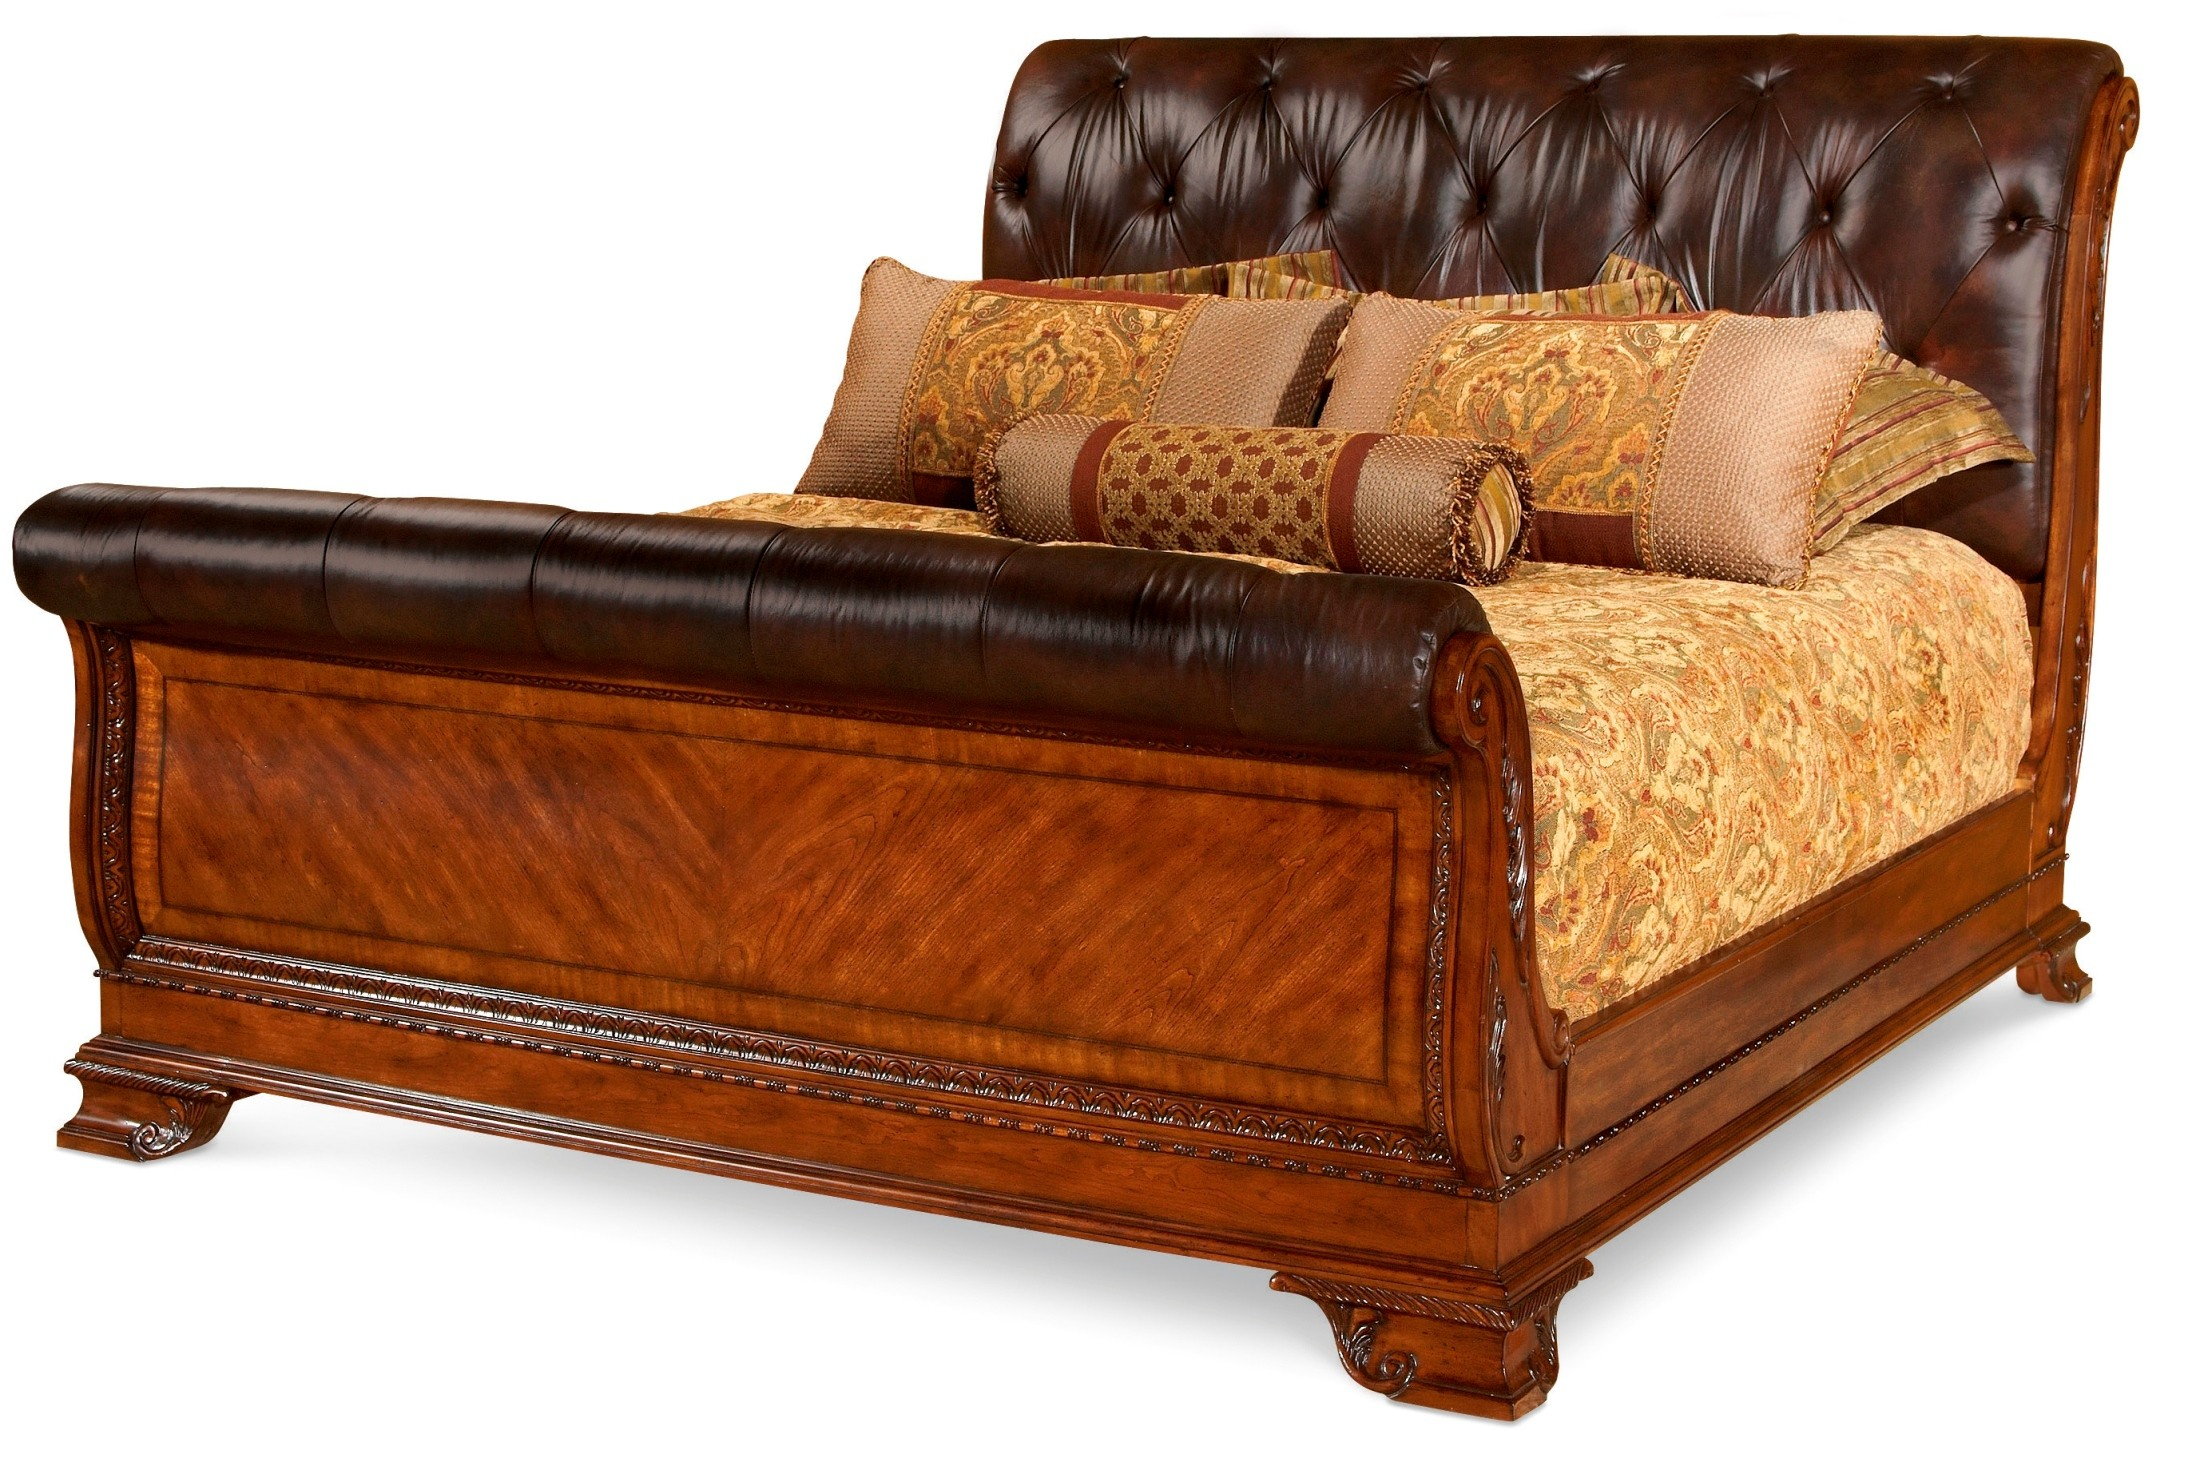 Leather and wood king sized sleigh bed african teens porn - King size sleigh bed bedroom set ...